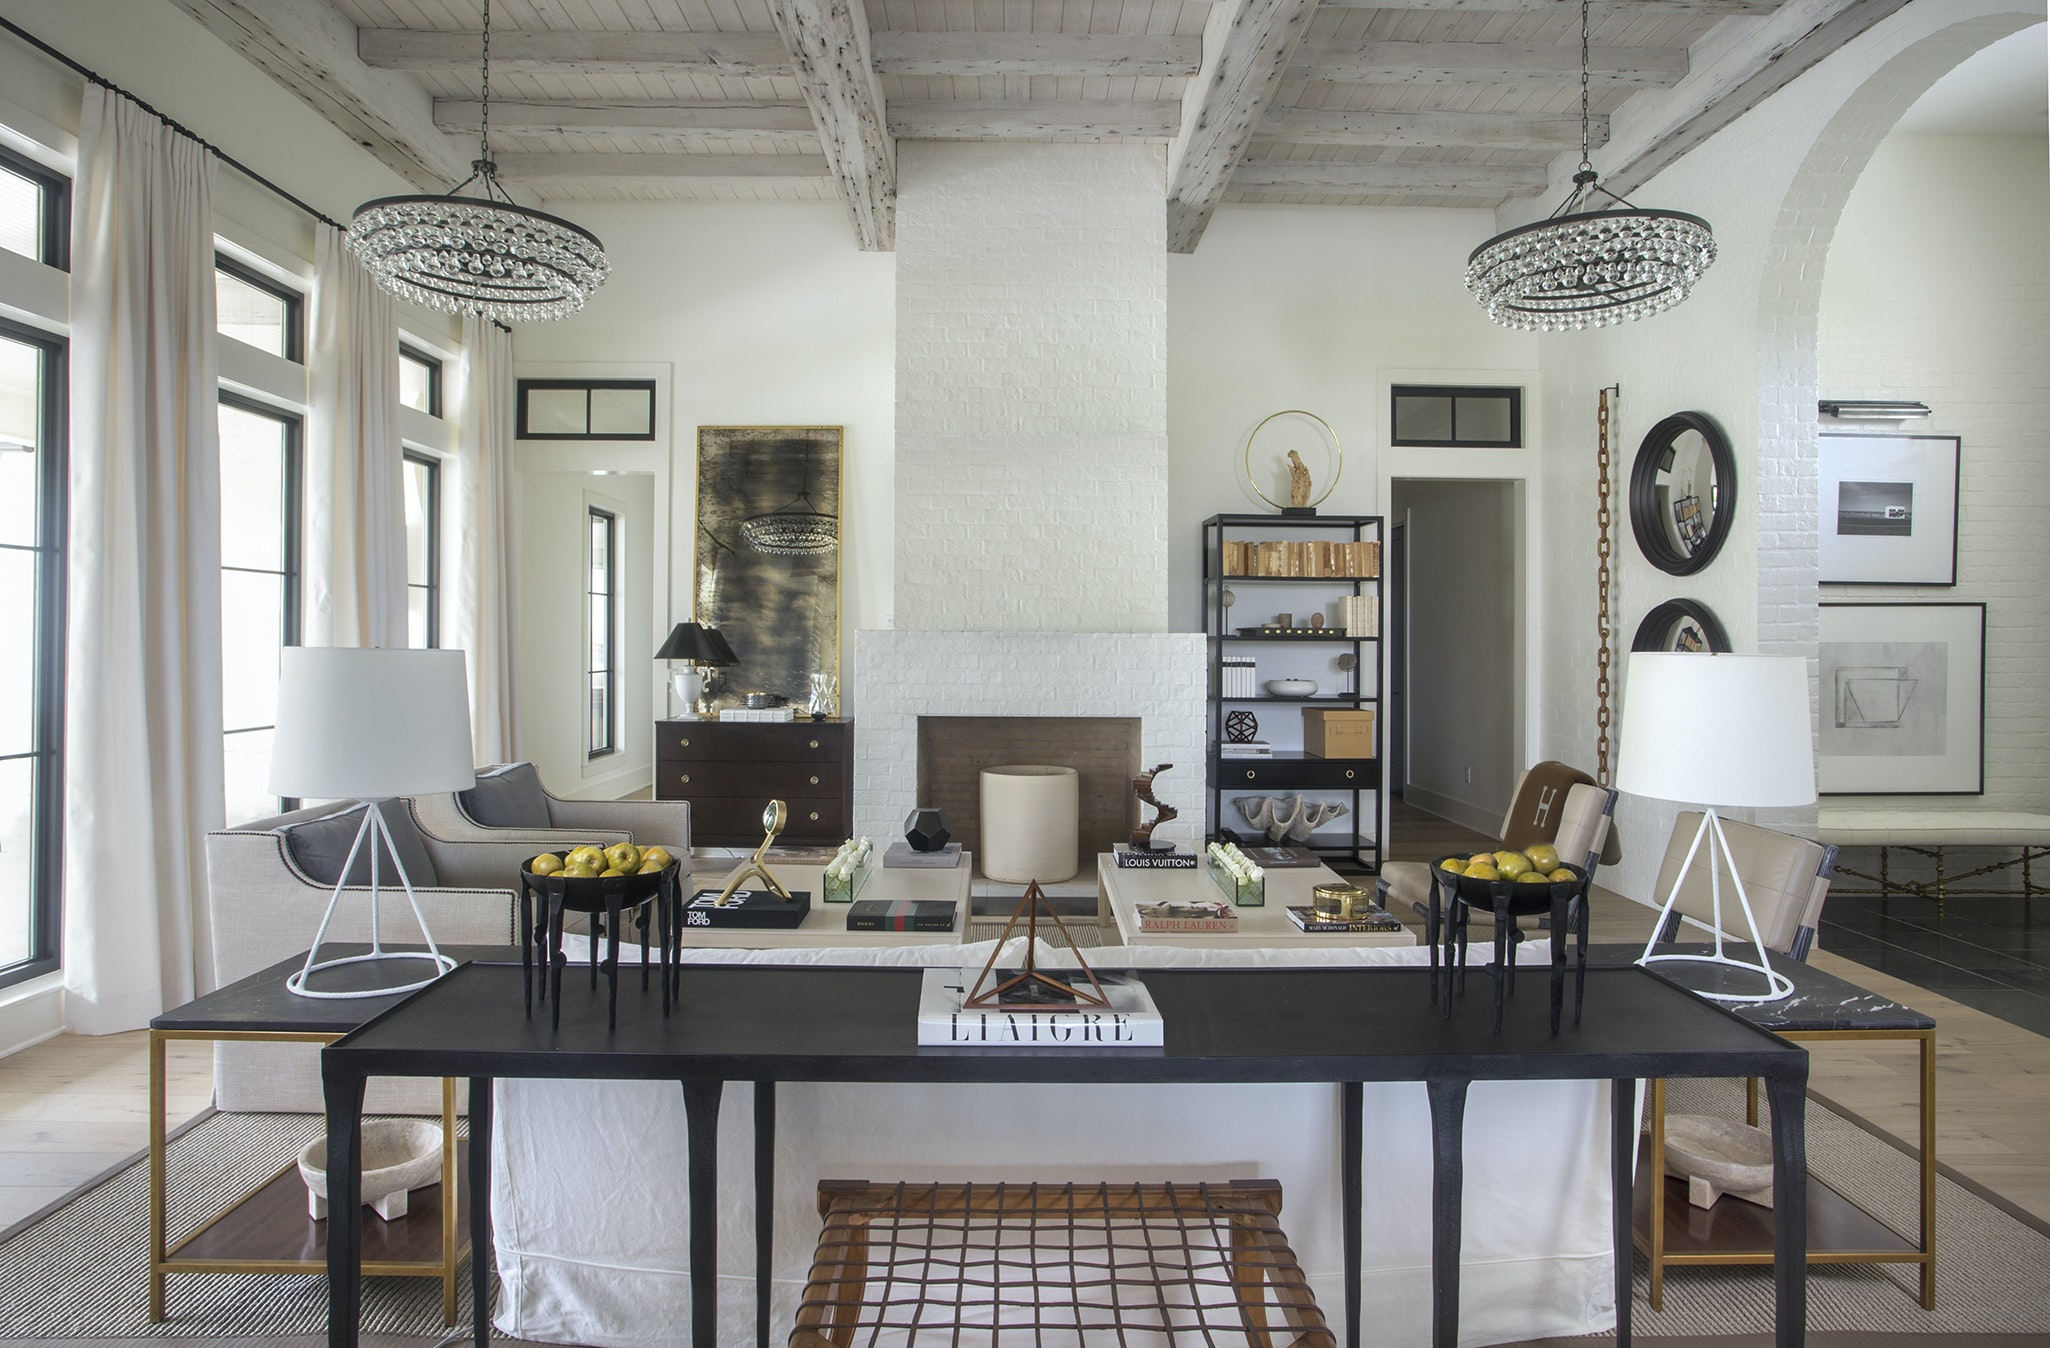 Two Large Chandeliers In The Living Room Flank The Fireplace And Keep The  Sight Line Open Through The Space. Painted Brick, Whitewashed Antique Pine  Beams ...